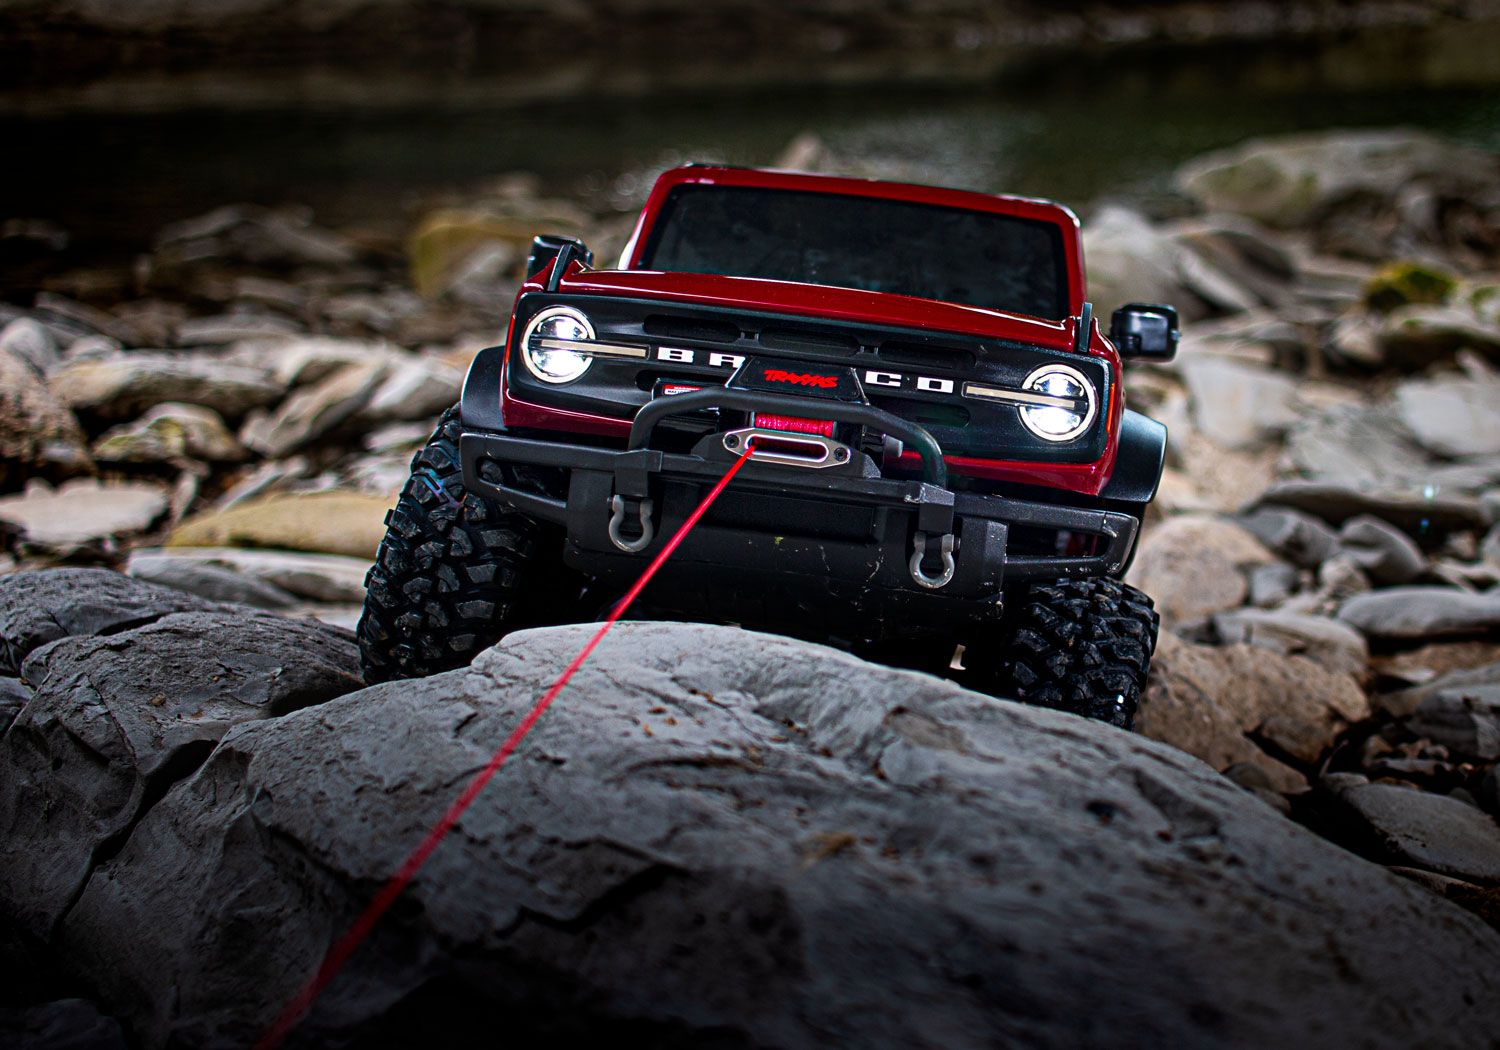 TRX-4 2021 Bronco with installed winch